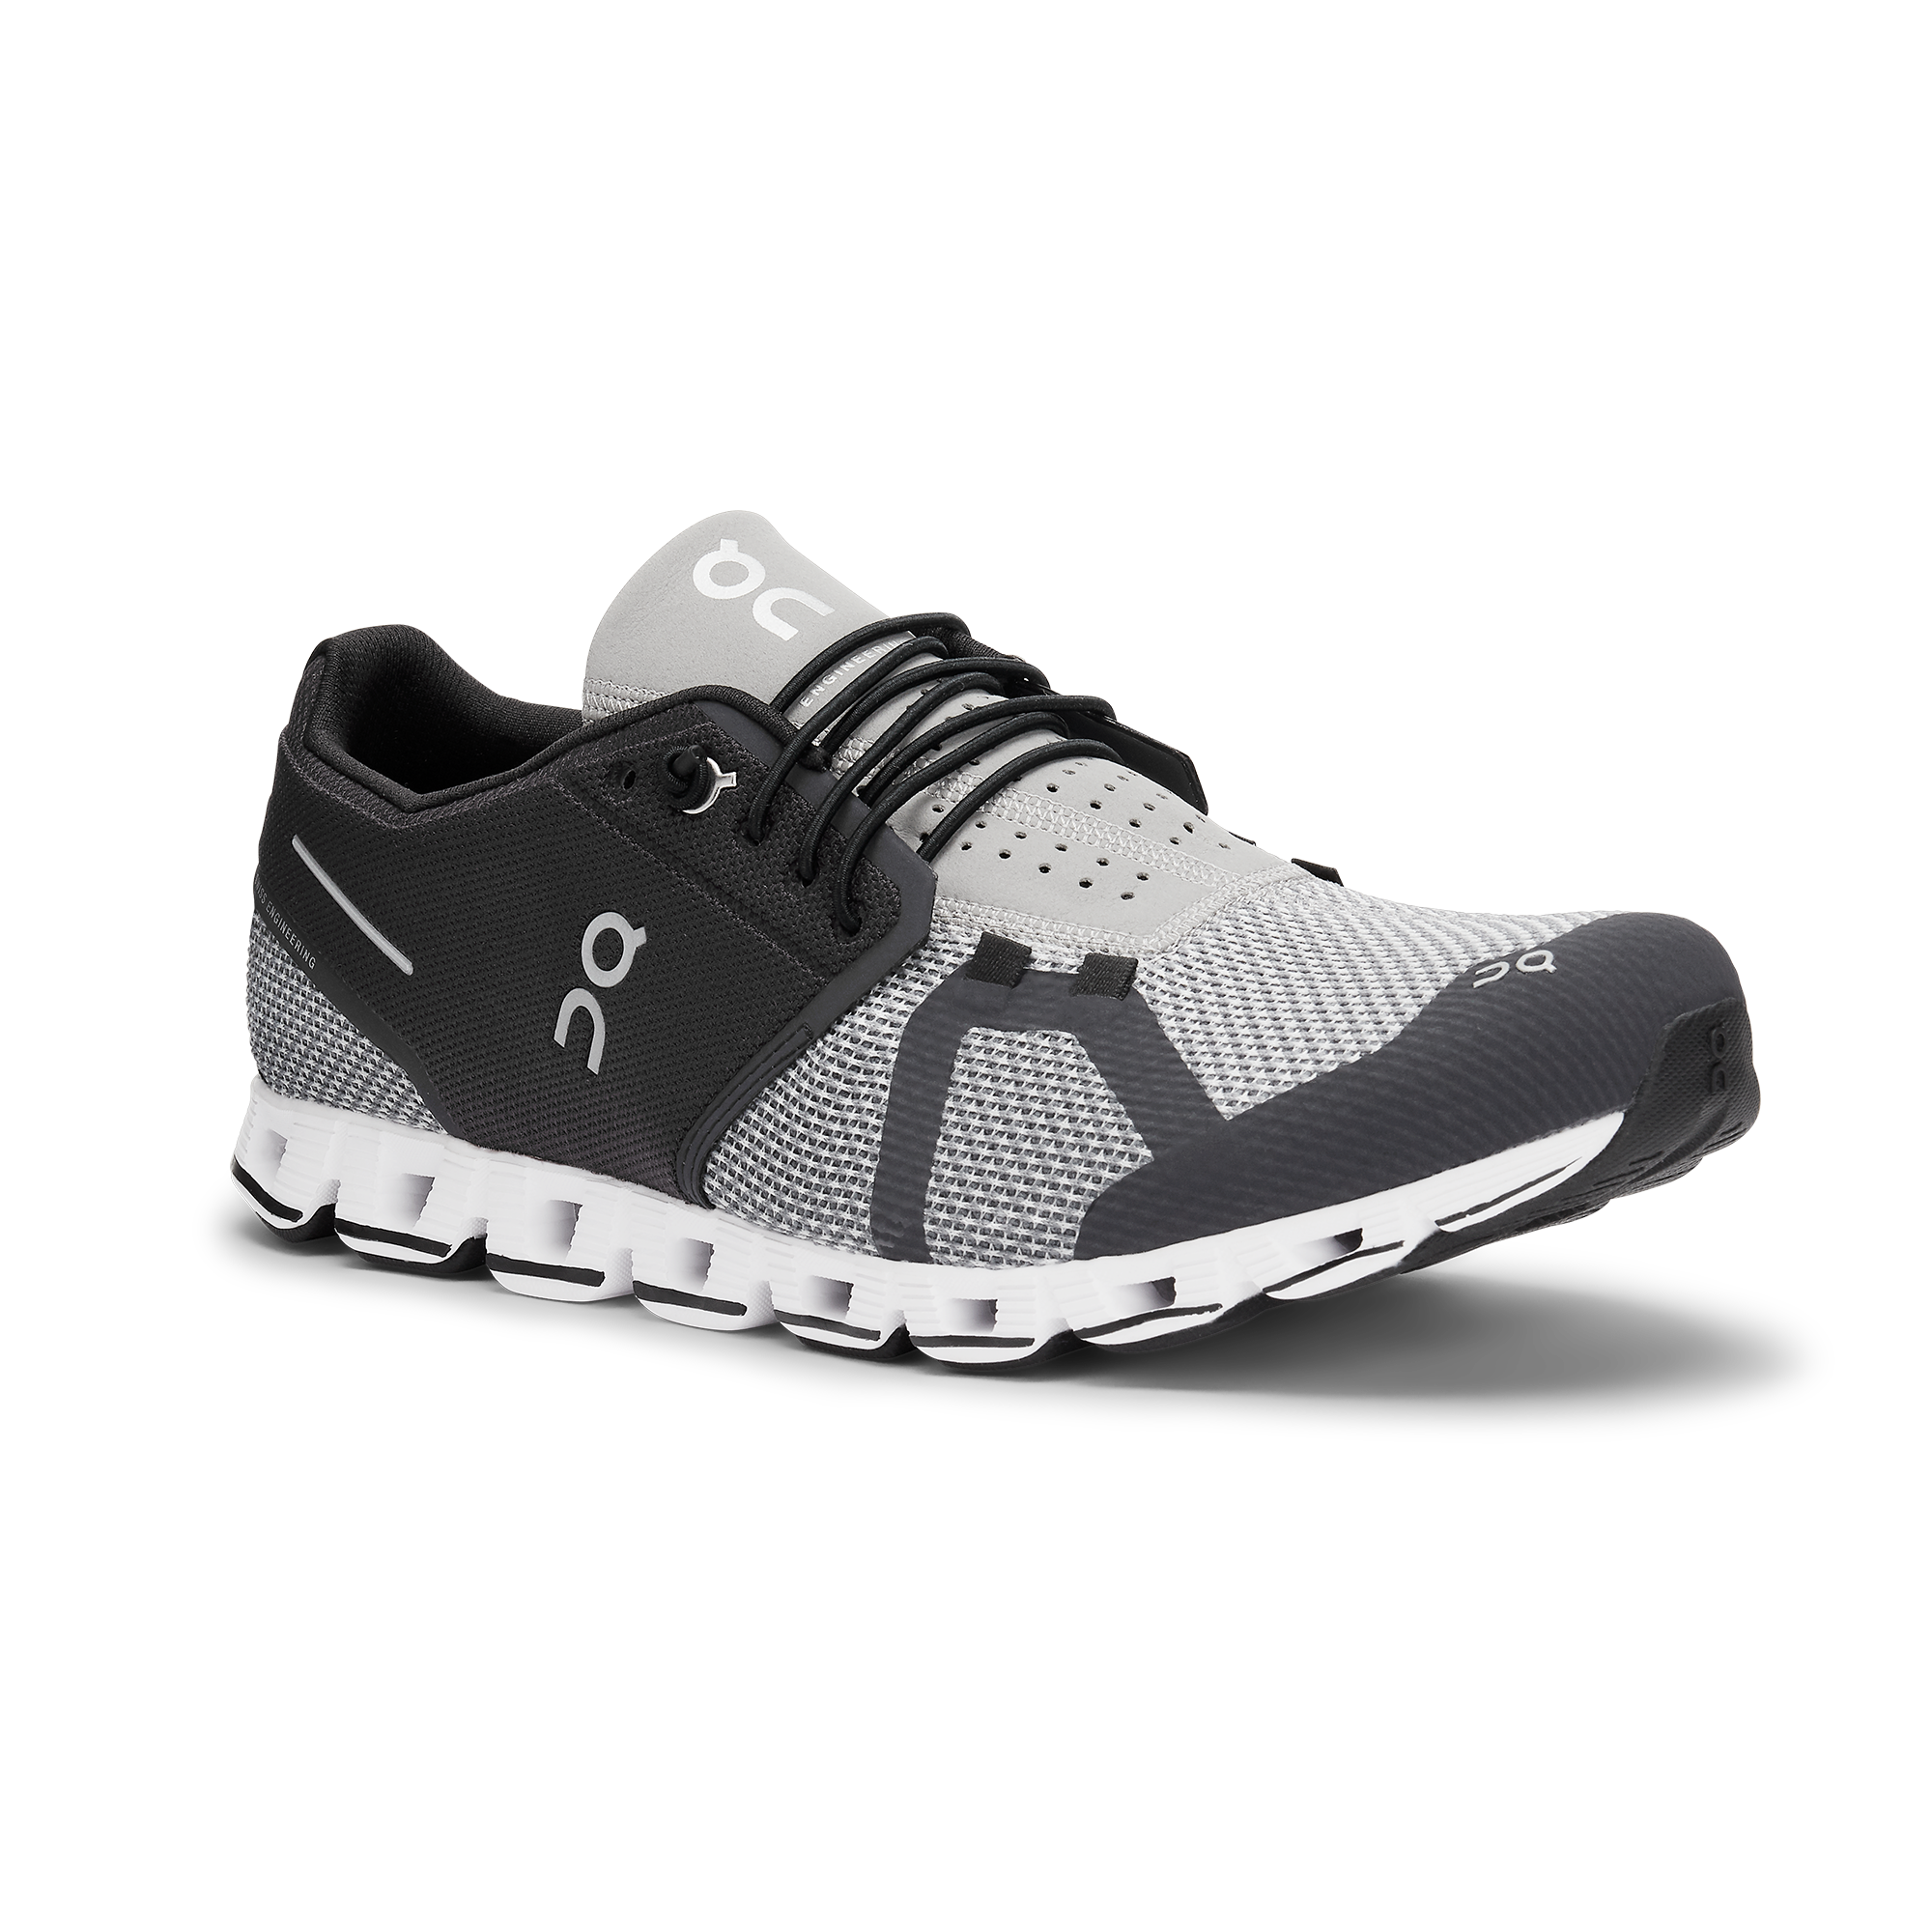 Cloud Lightweight Running Lightweight Cloud ShoeOn qVUzSpM